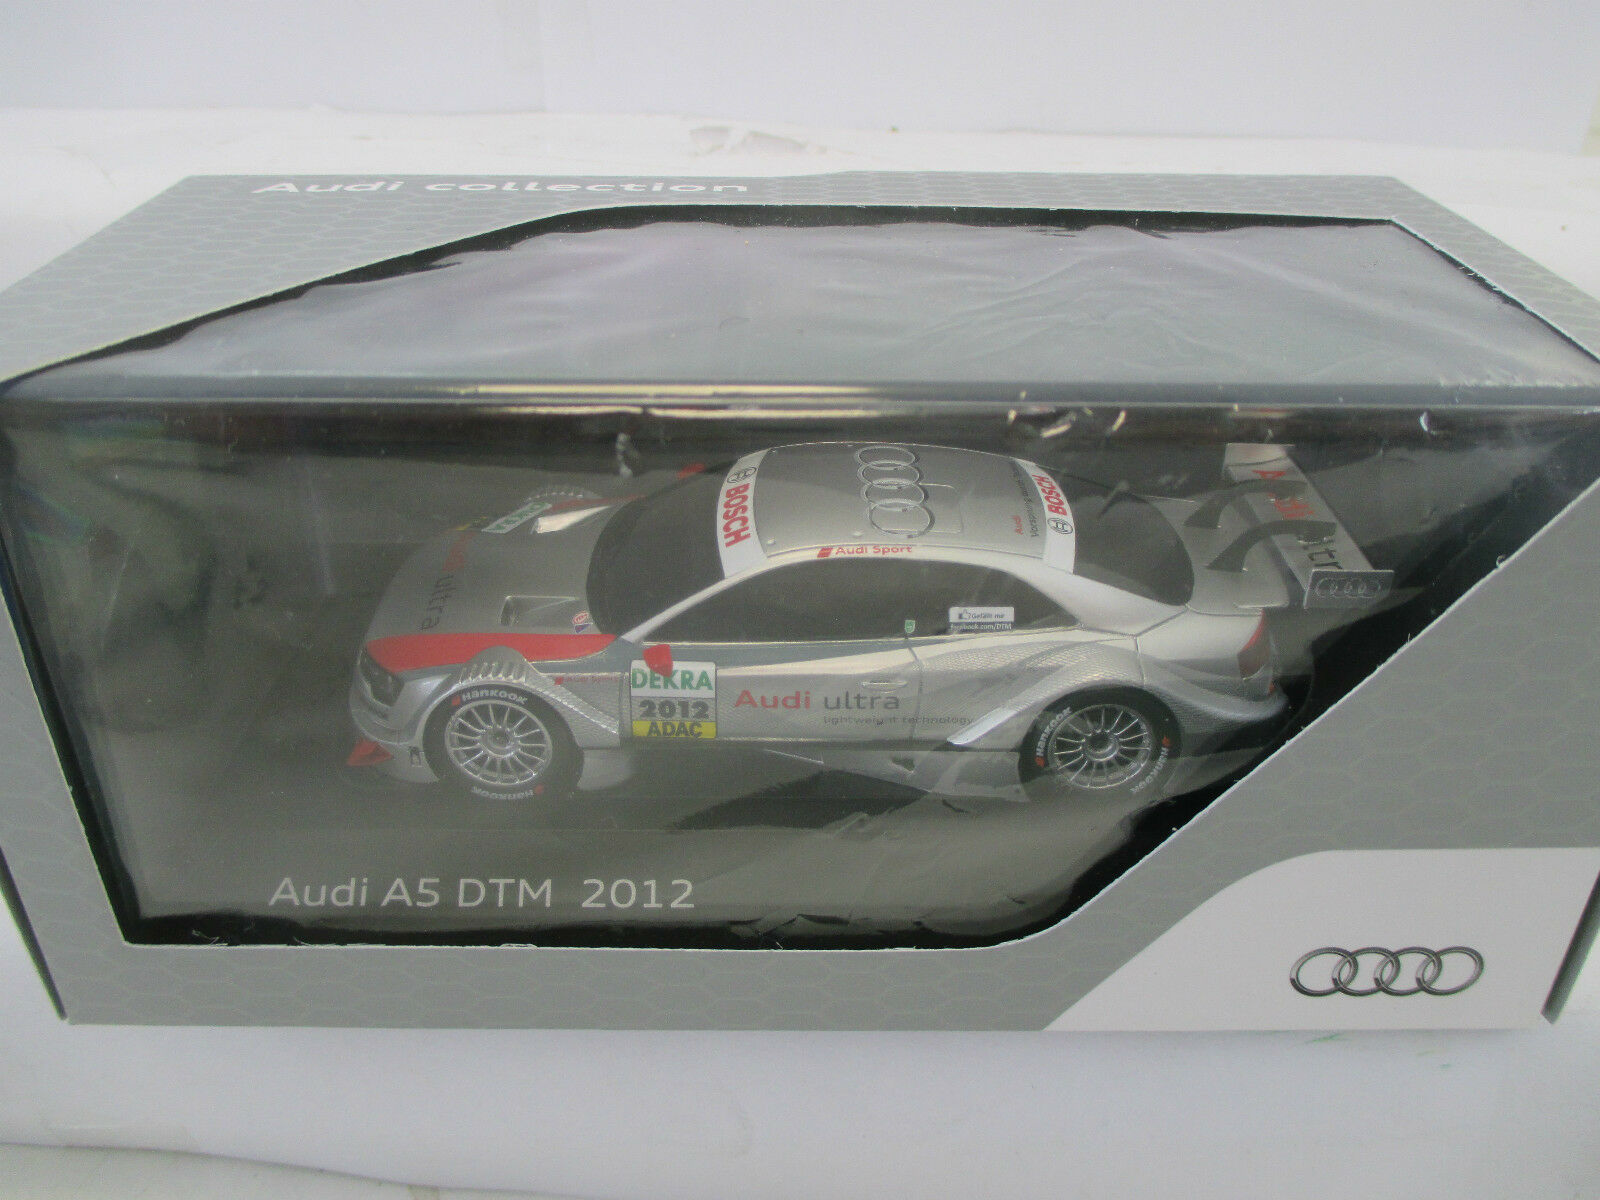 BARGAIN weeks Audi 1 43 special models Top Condition Boxed Watch ws958